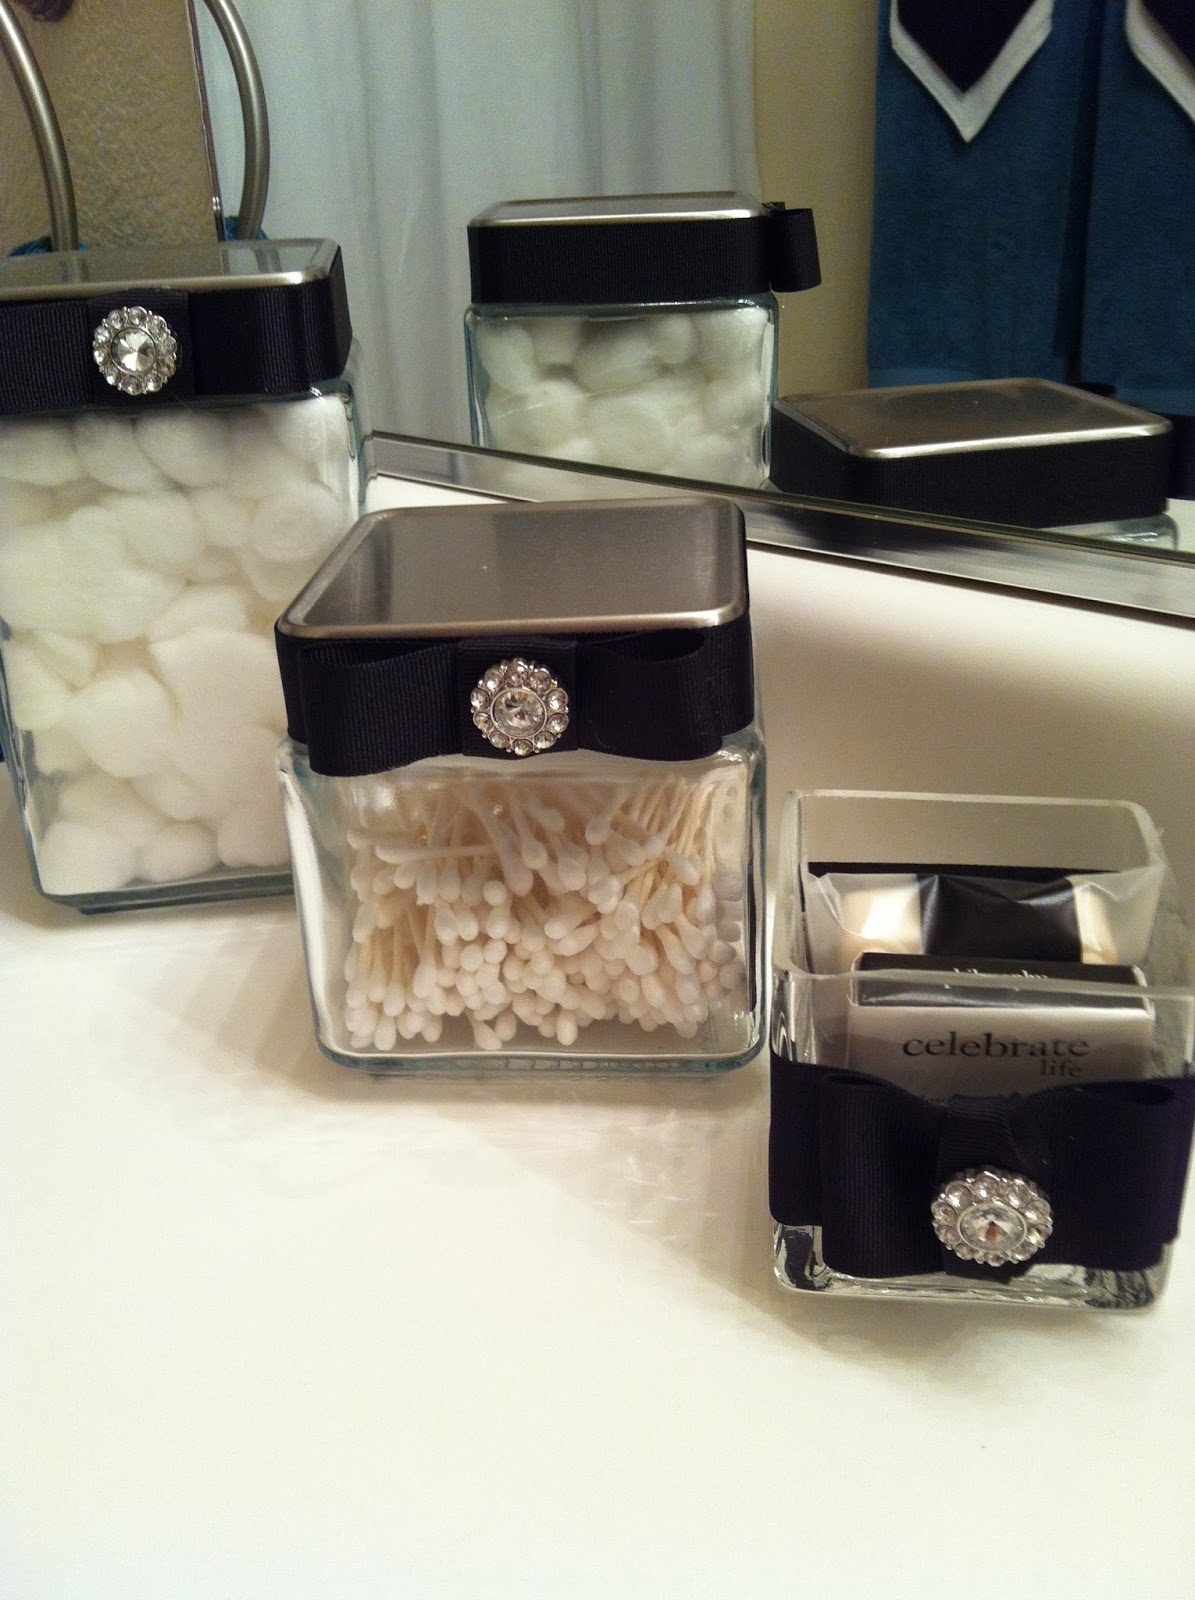 Buttons bows bling glam it up for Black bling bathroom accessories